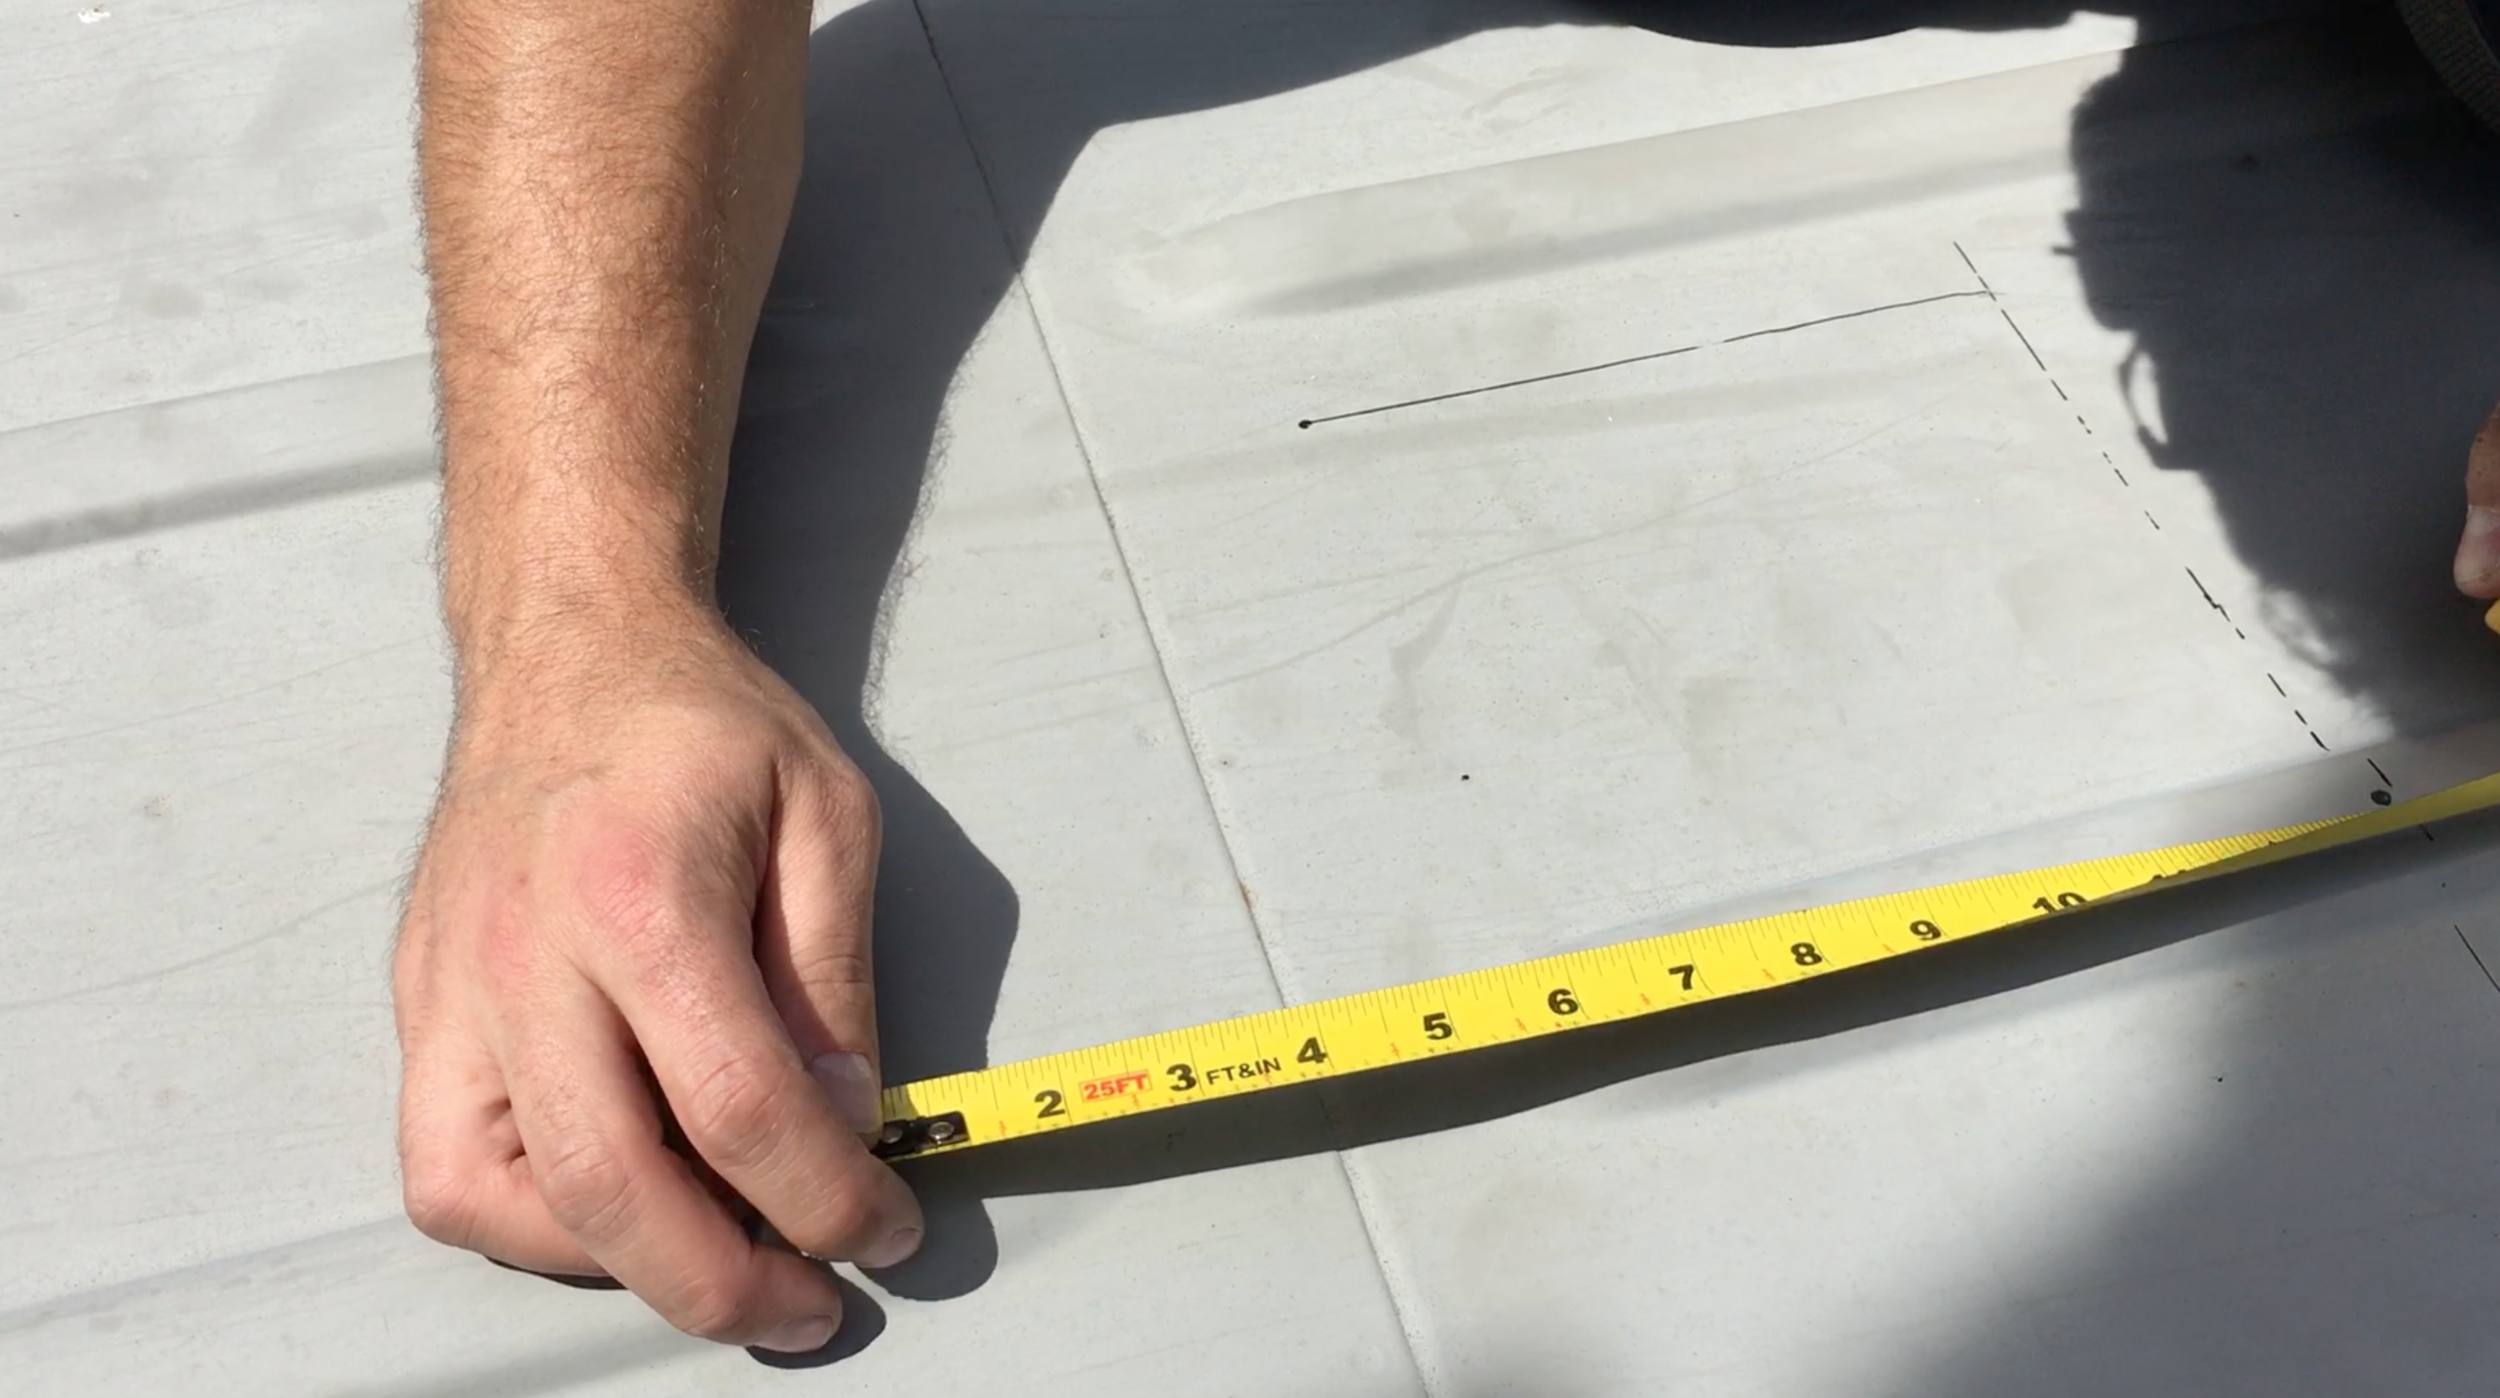 Measure and mark your lines!